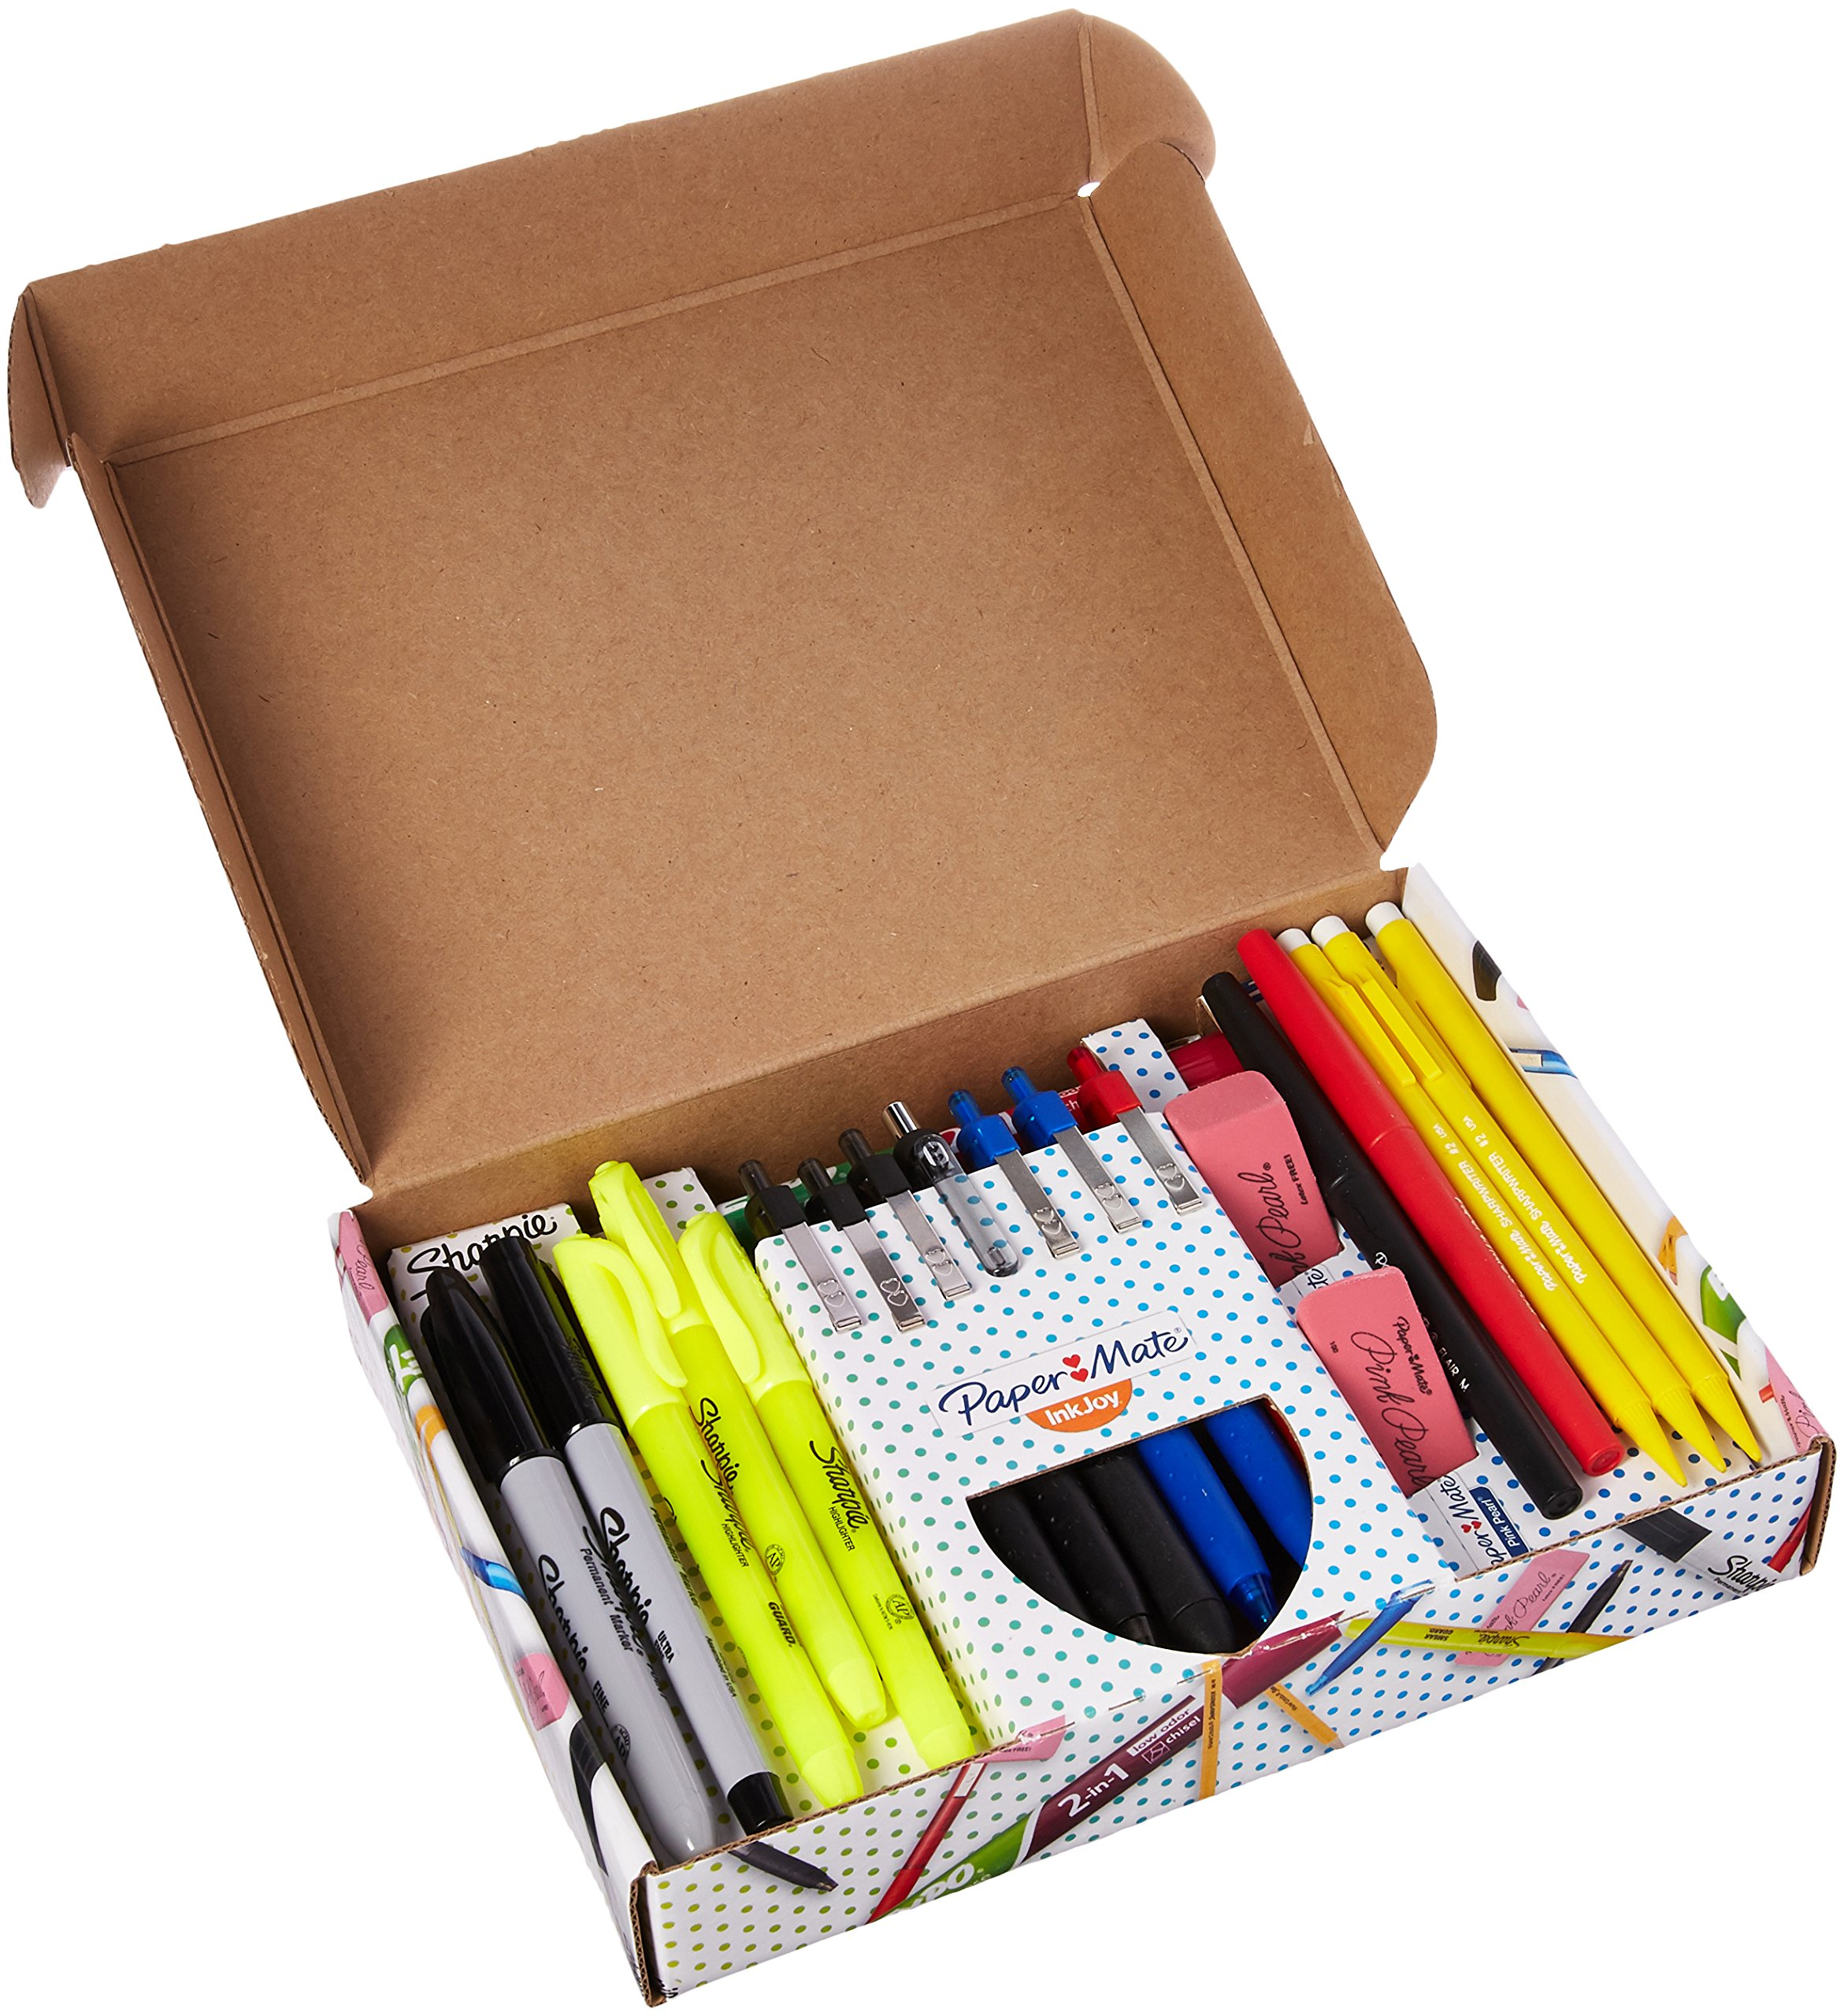 Details about School Writing Kit Set Pack Sharpie Paper Expo Sharpie  Markers Highlighter Notes